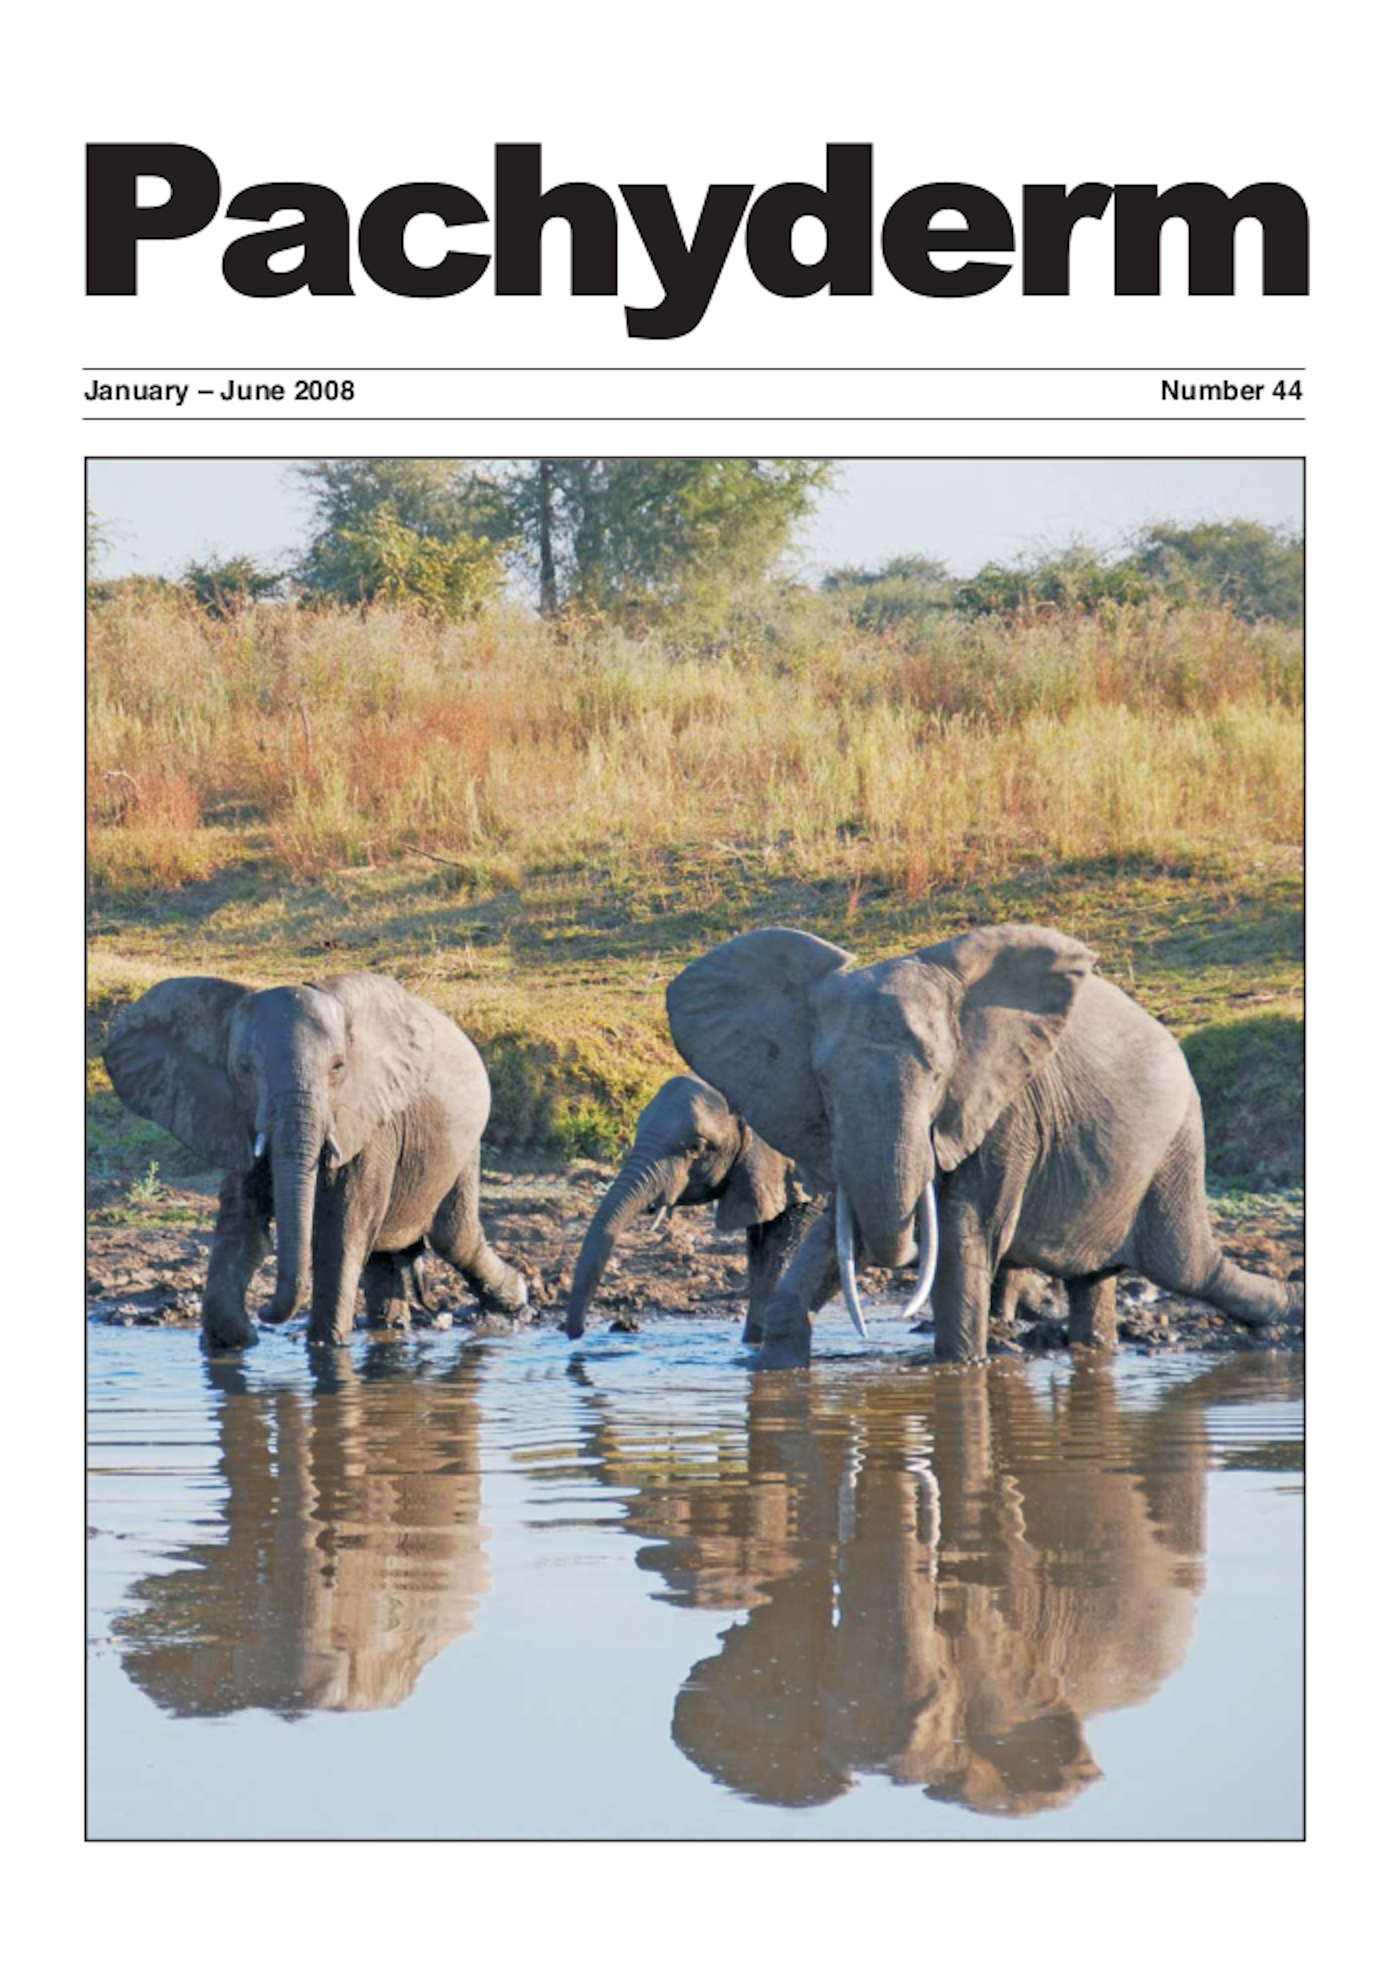 Cover: Elephant herd Luangwa Valley, Zambia. Photo: Julian Fennessy